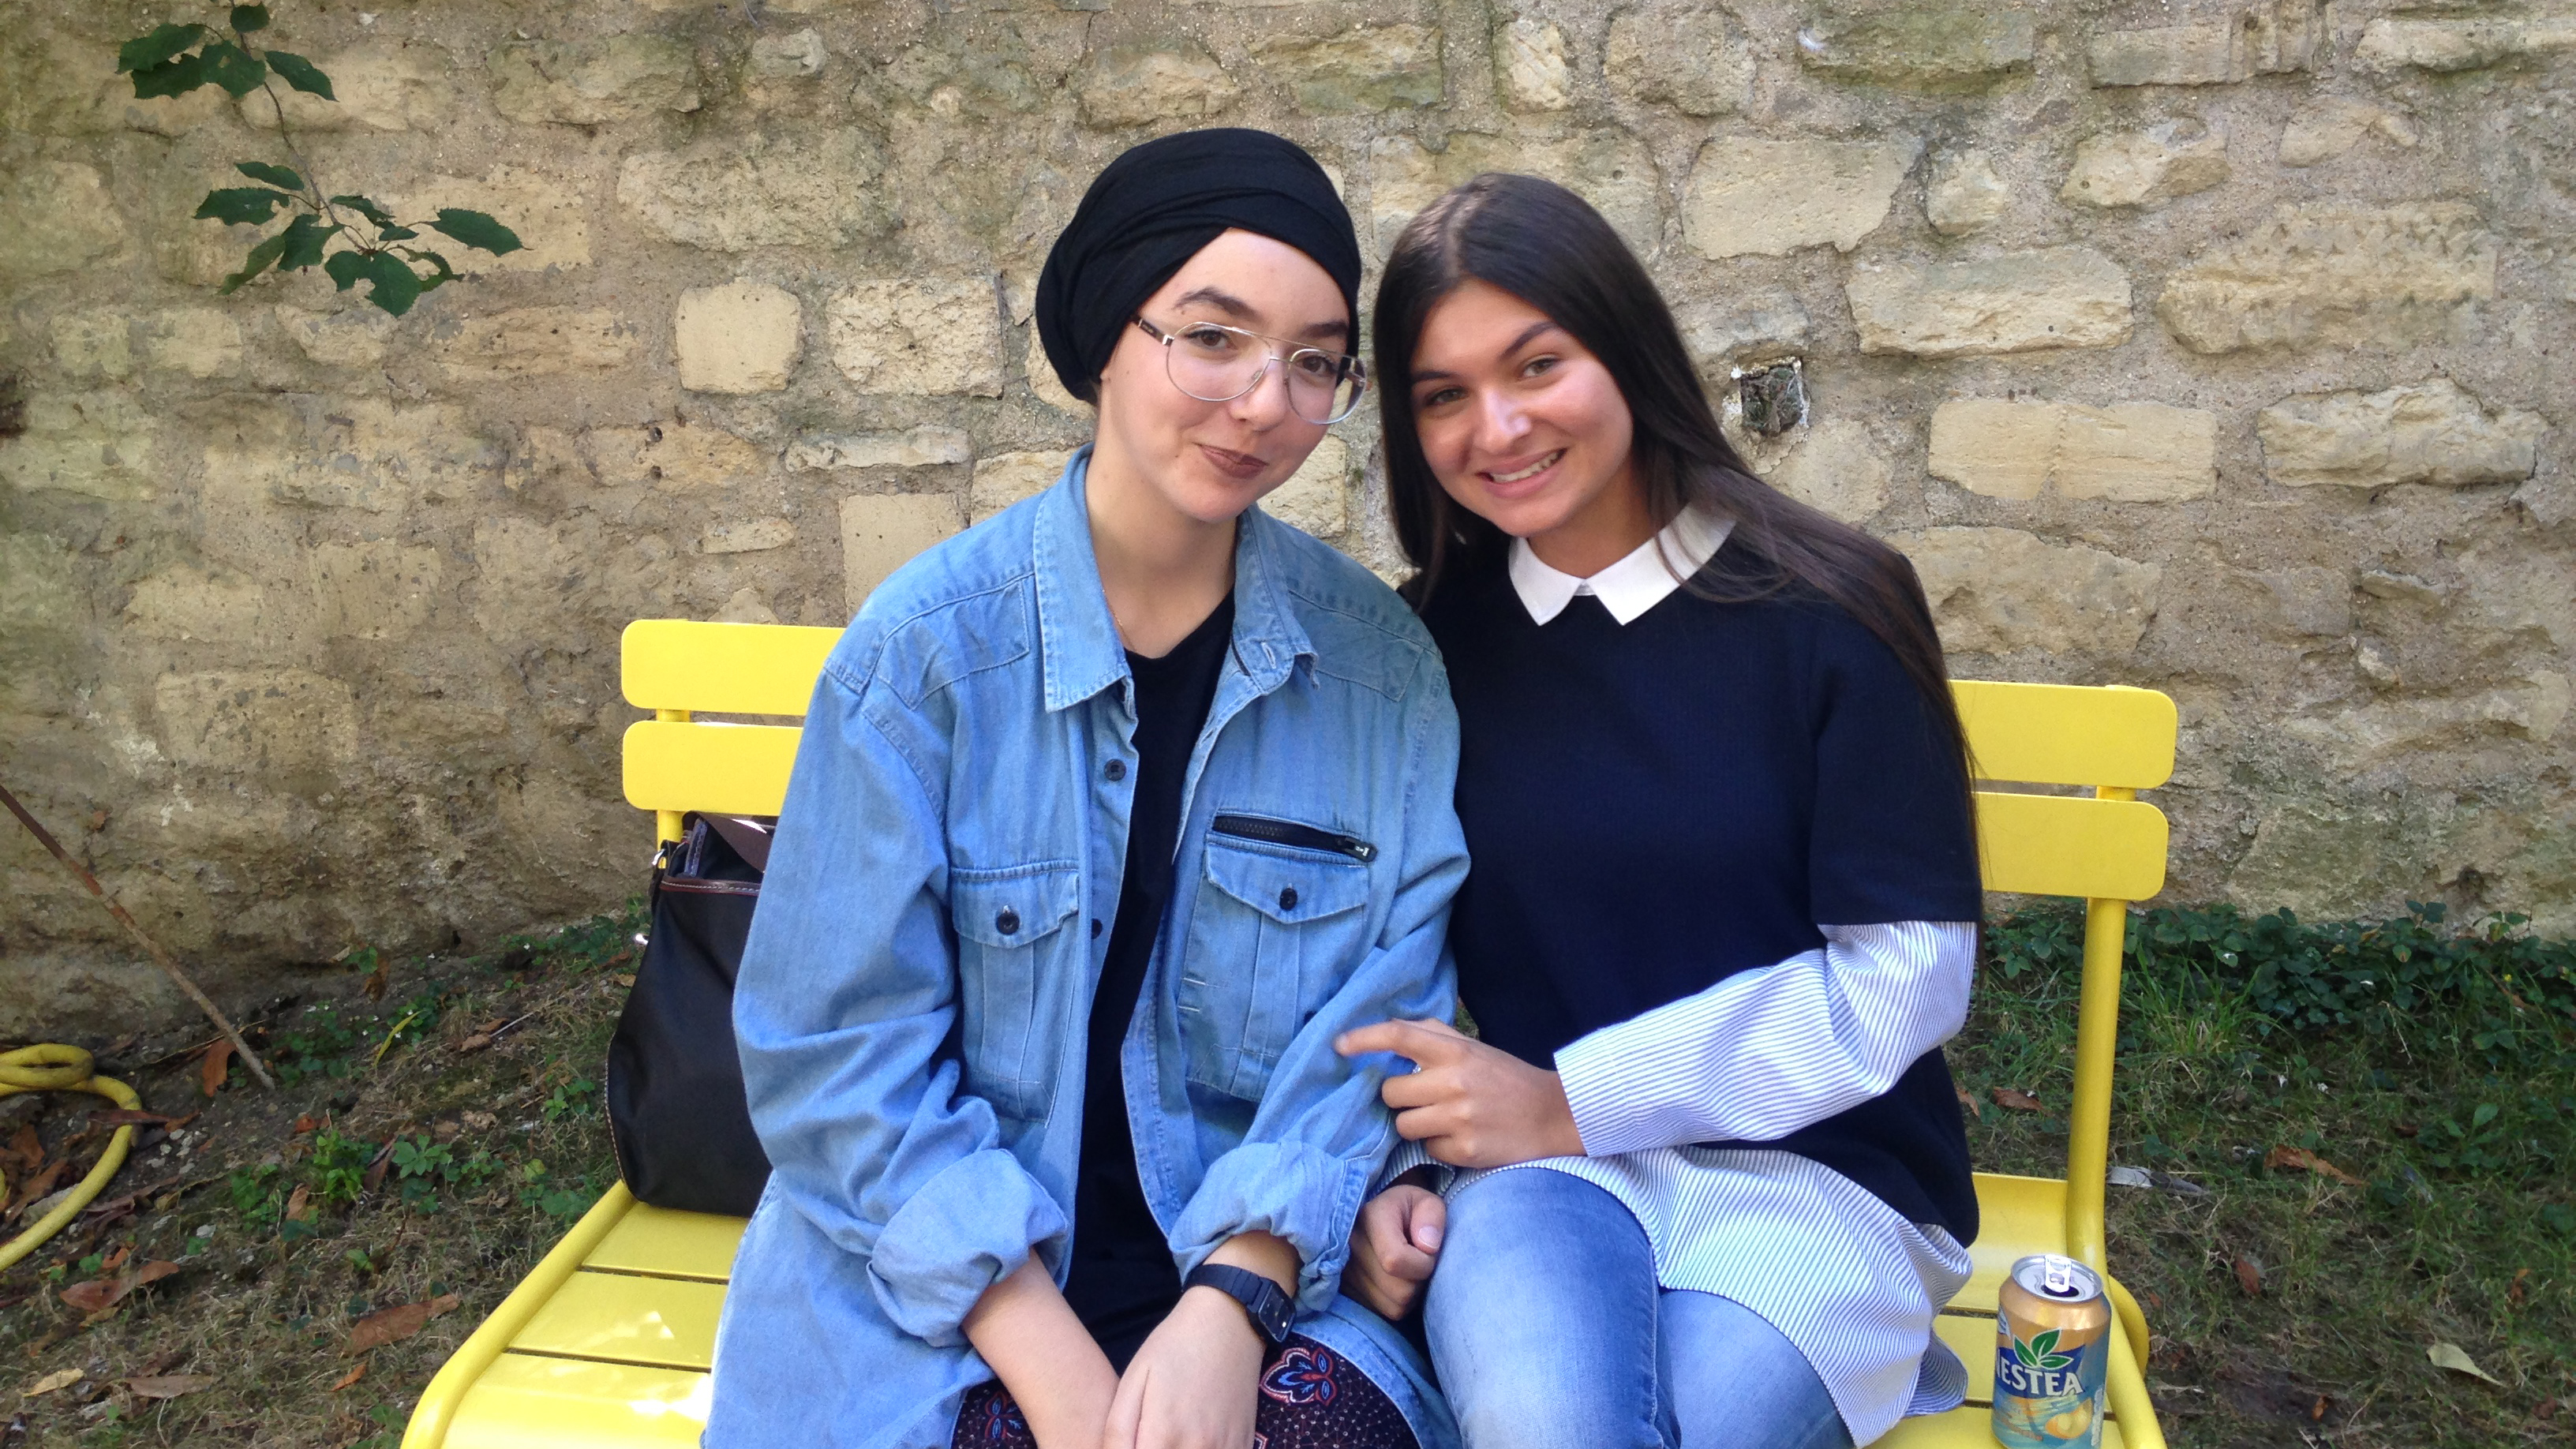 Sirine Bidjou (right) and Hanifa Benrahou (left) are both students at Sciences Po, which they entered through the CEP program. It's France's answer to American-style affirmative action.